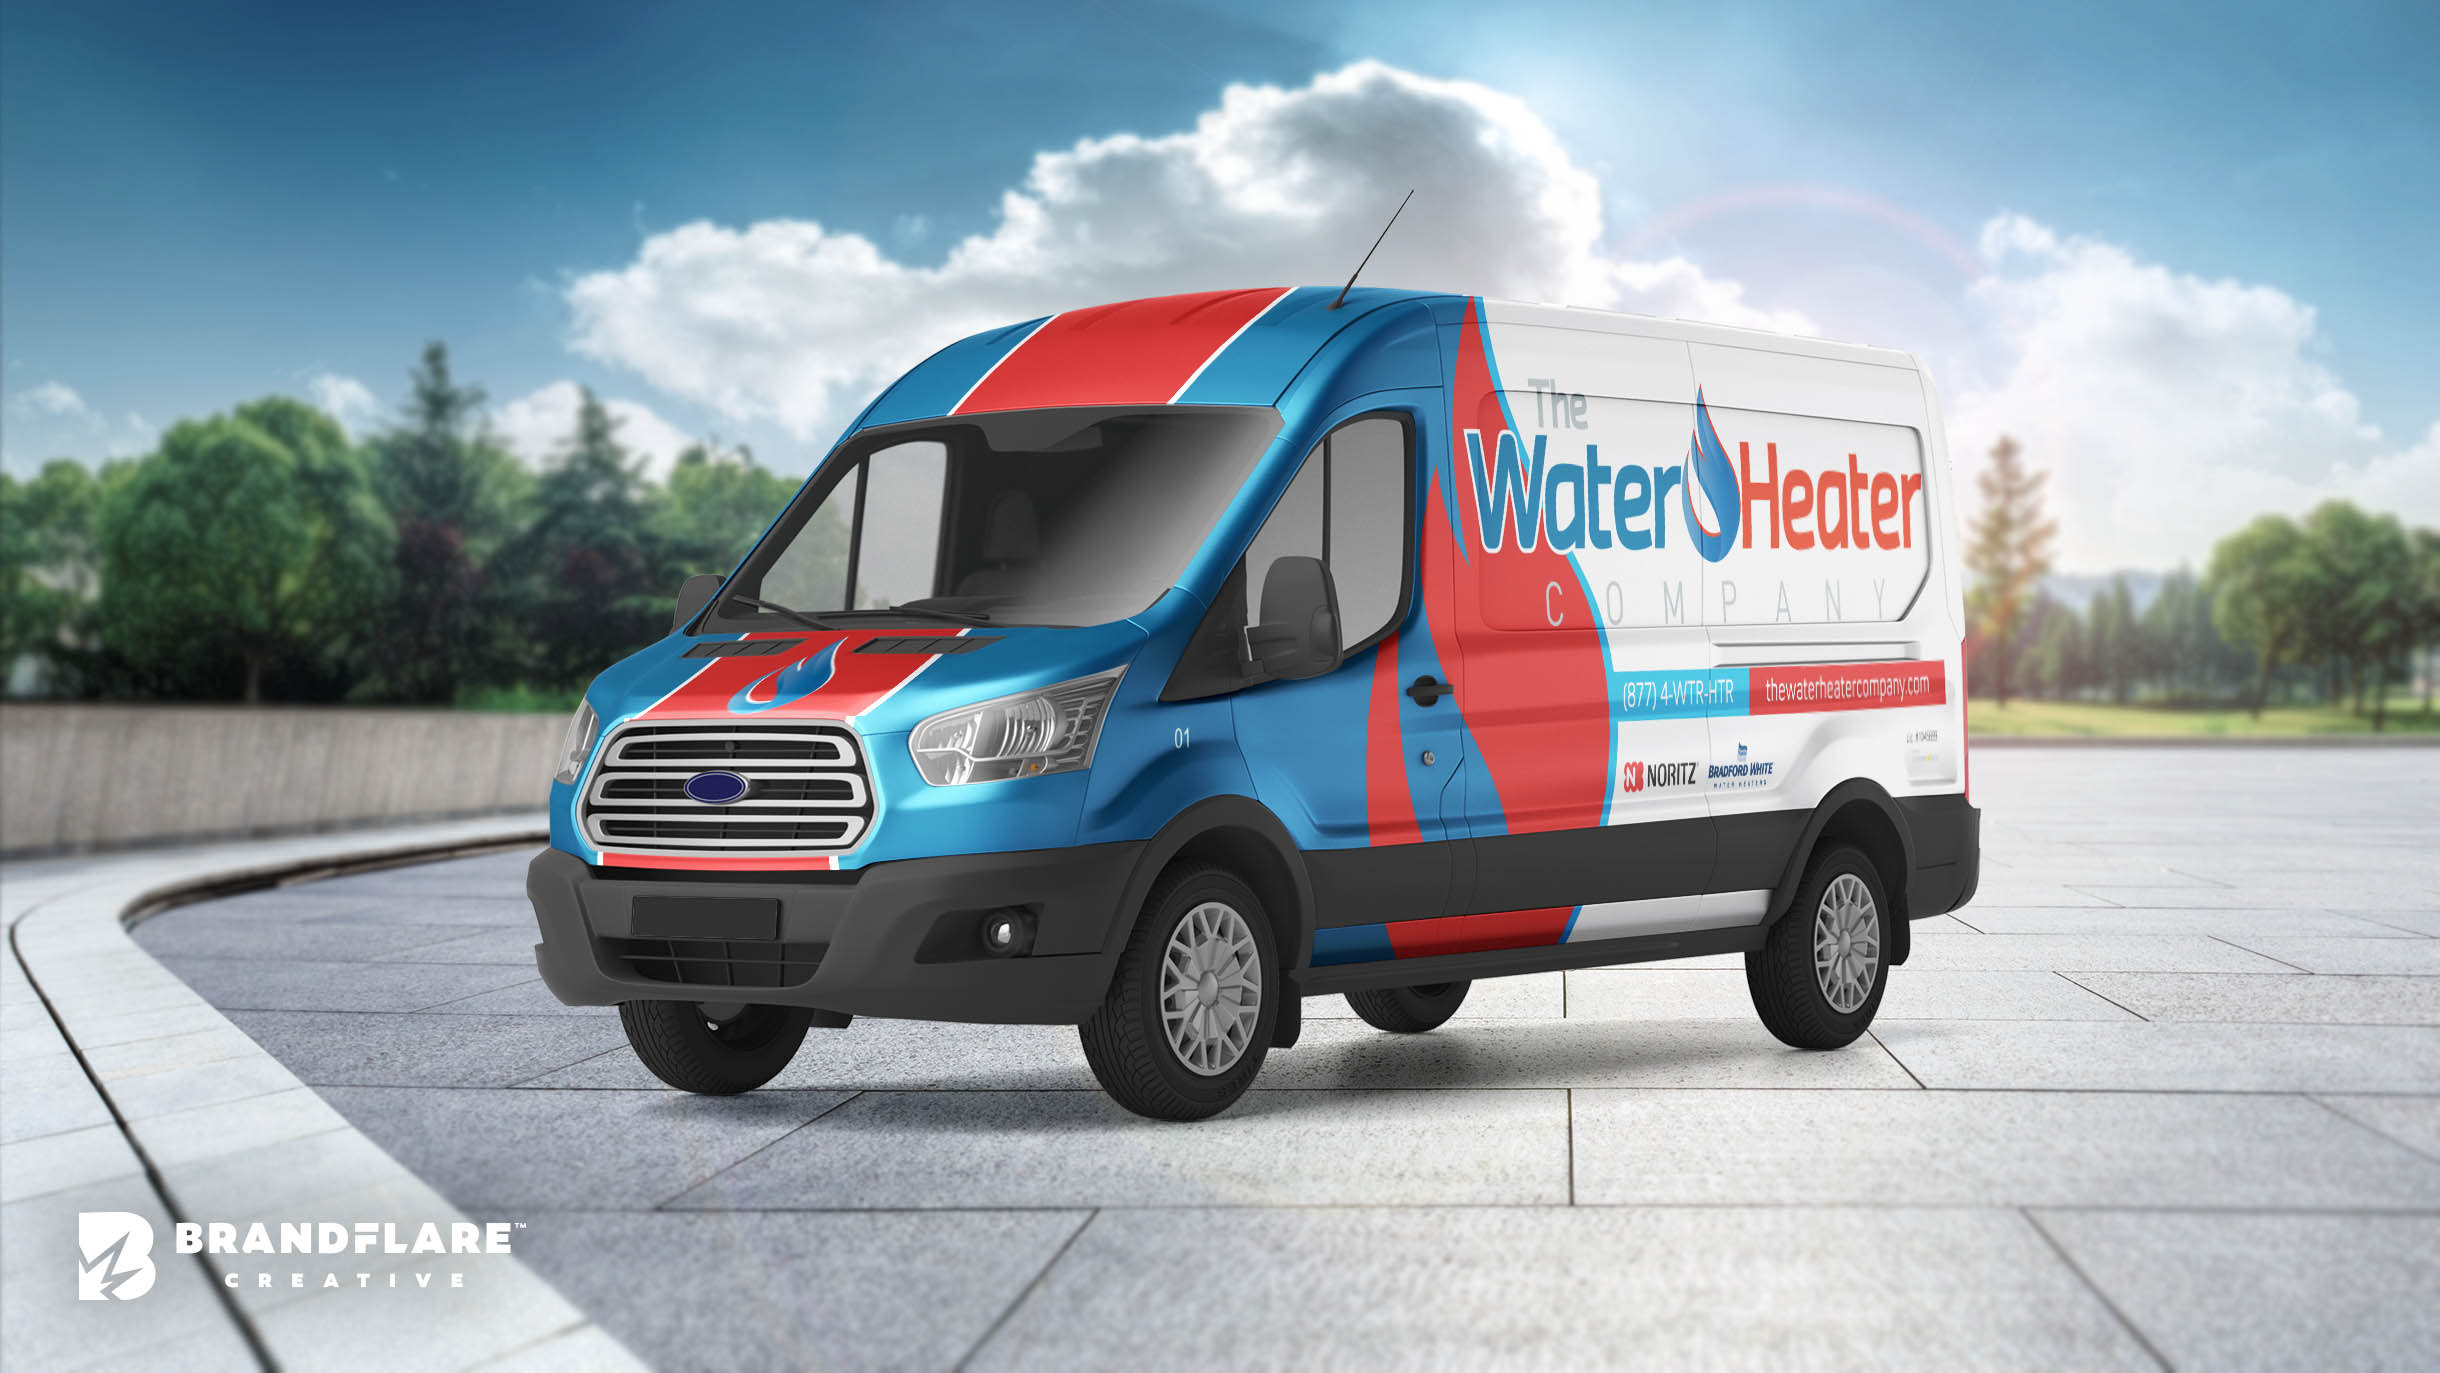 The Water Heater Company Van Wrap Design - BrandFlare Creative - Vehicle Wrap Design 2